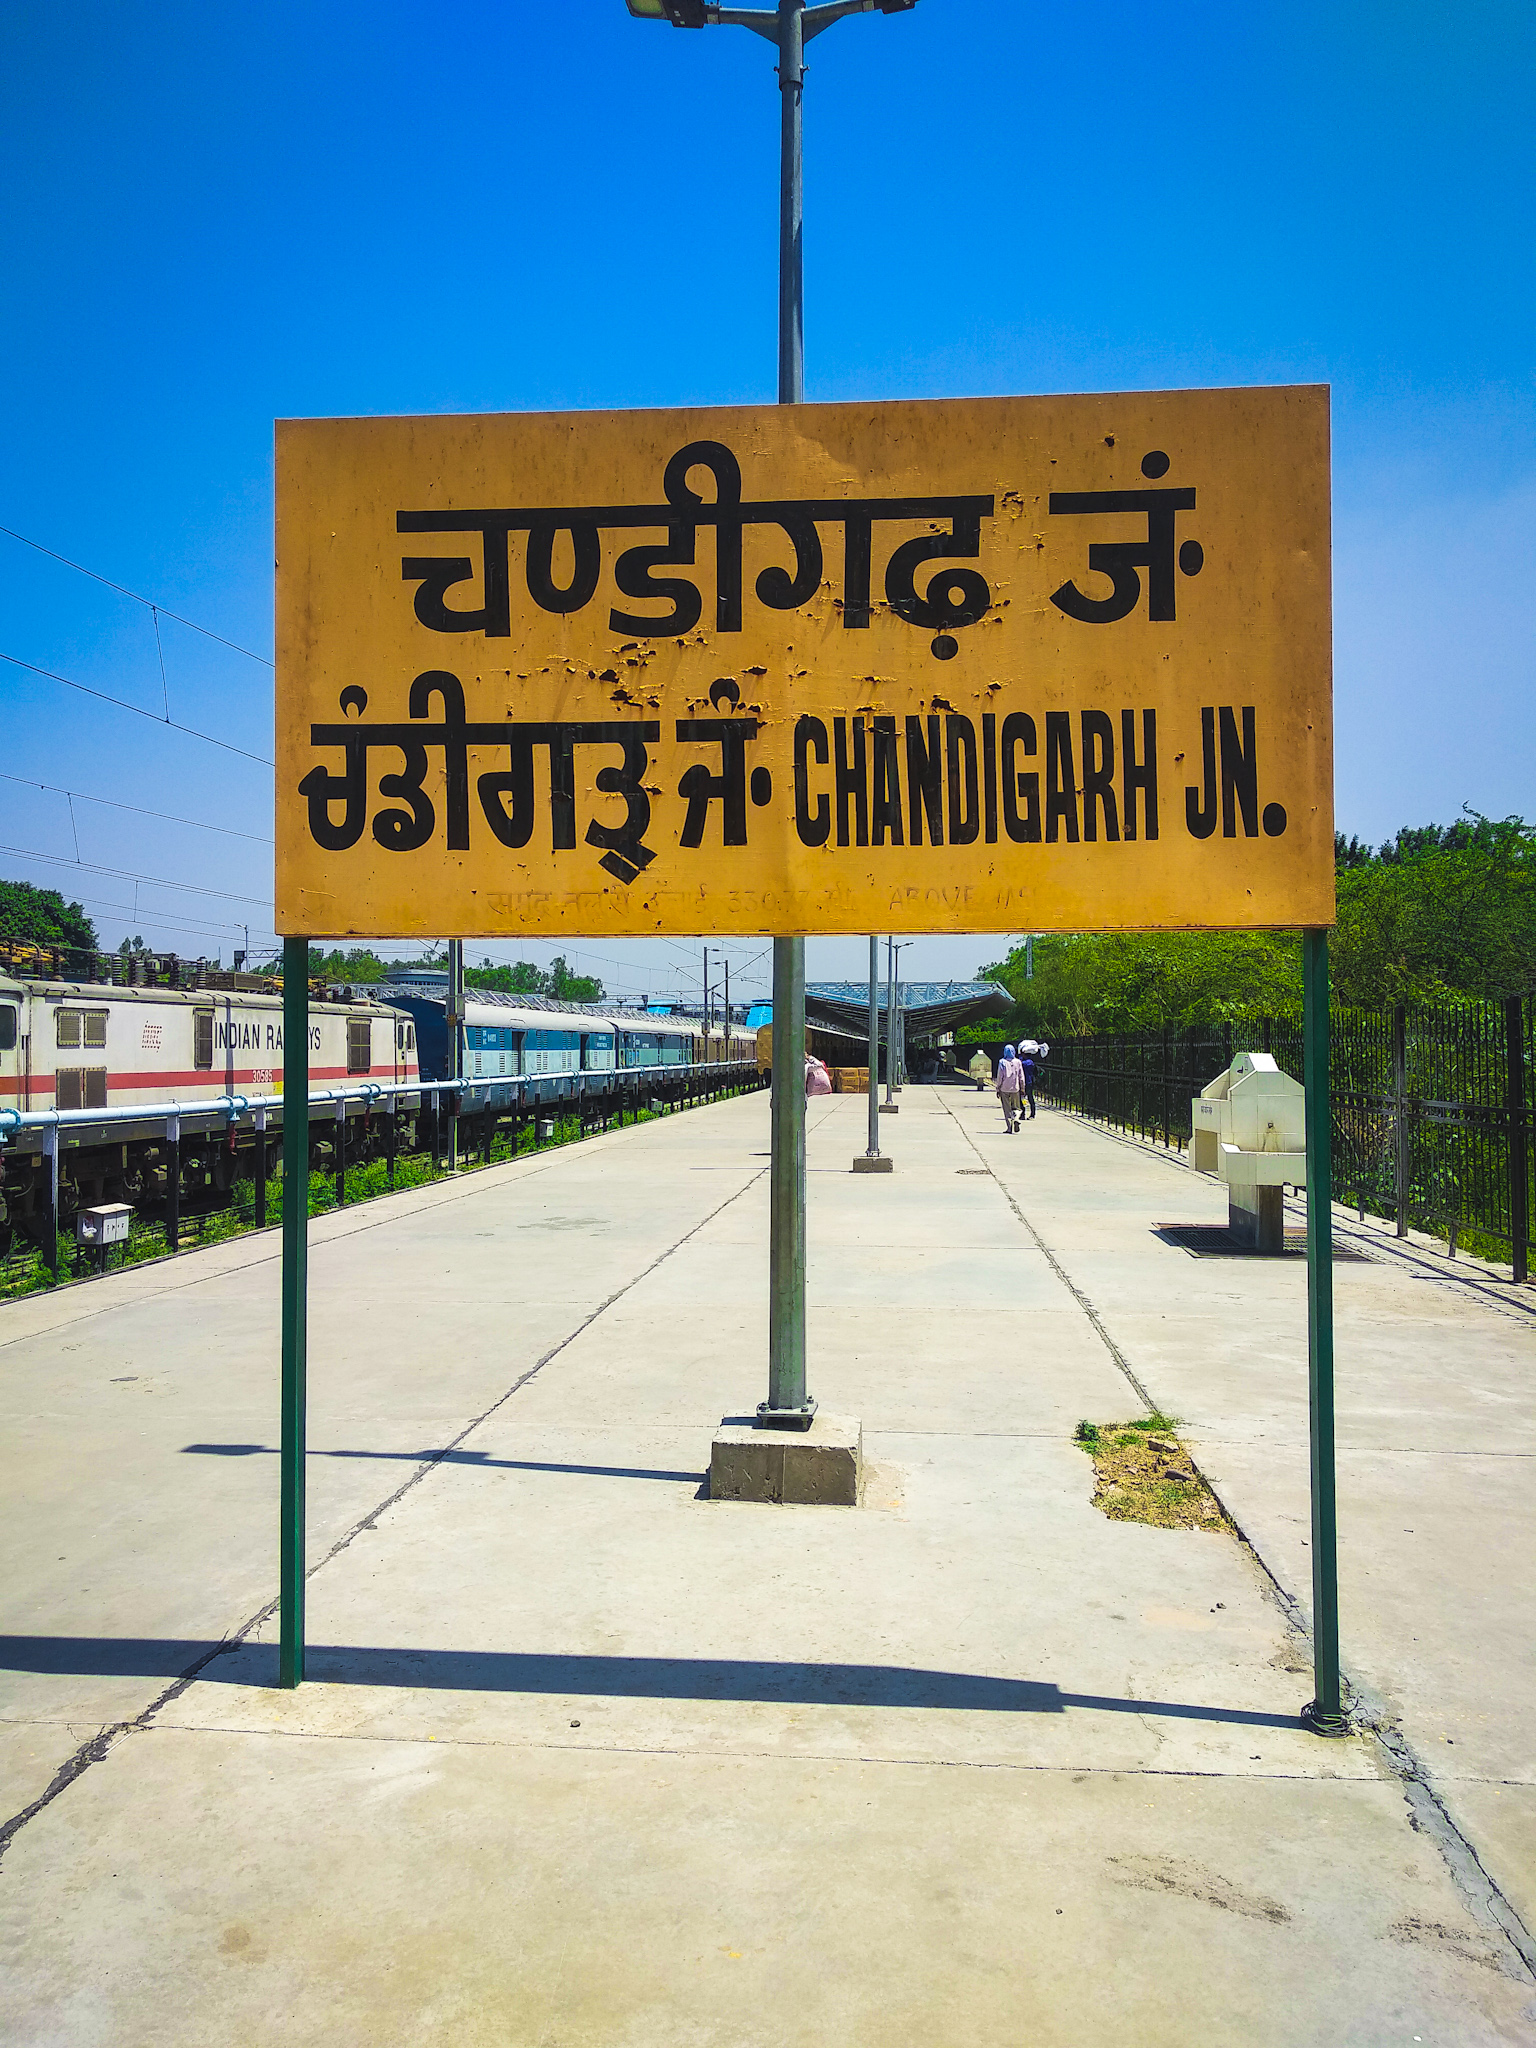 Why should you visit Chandigarh at least once in your lifetime?